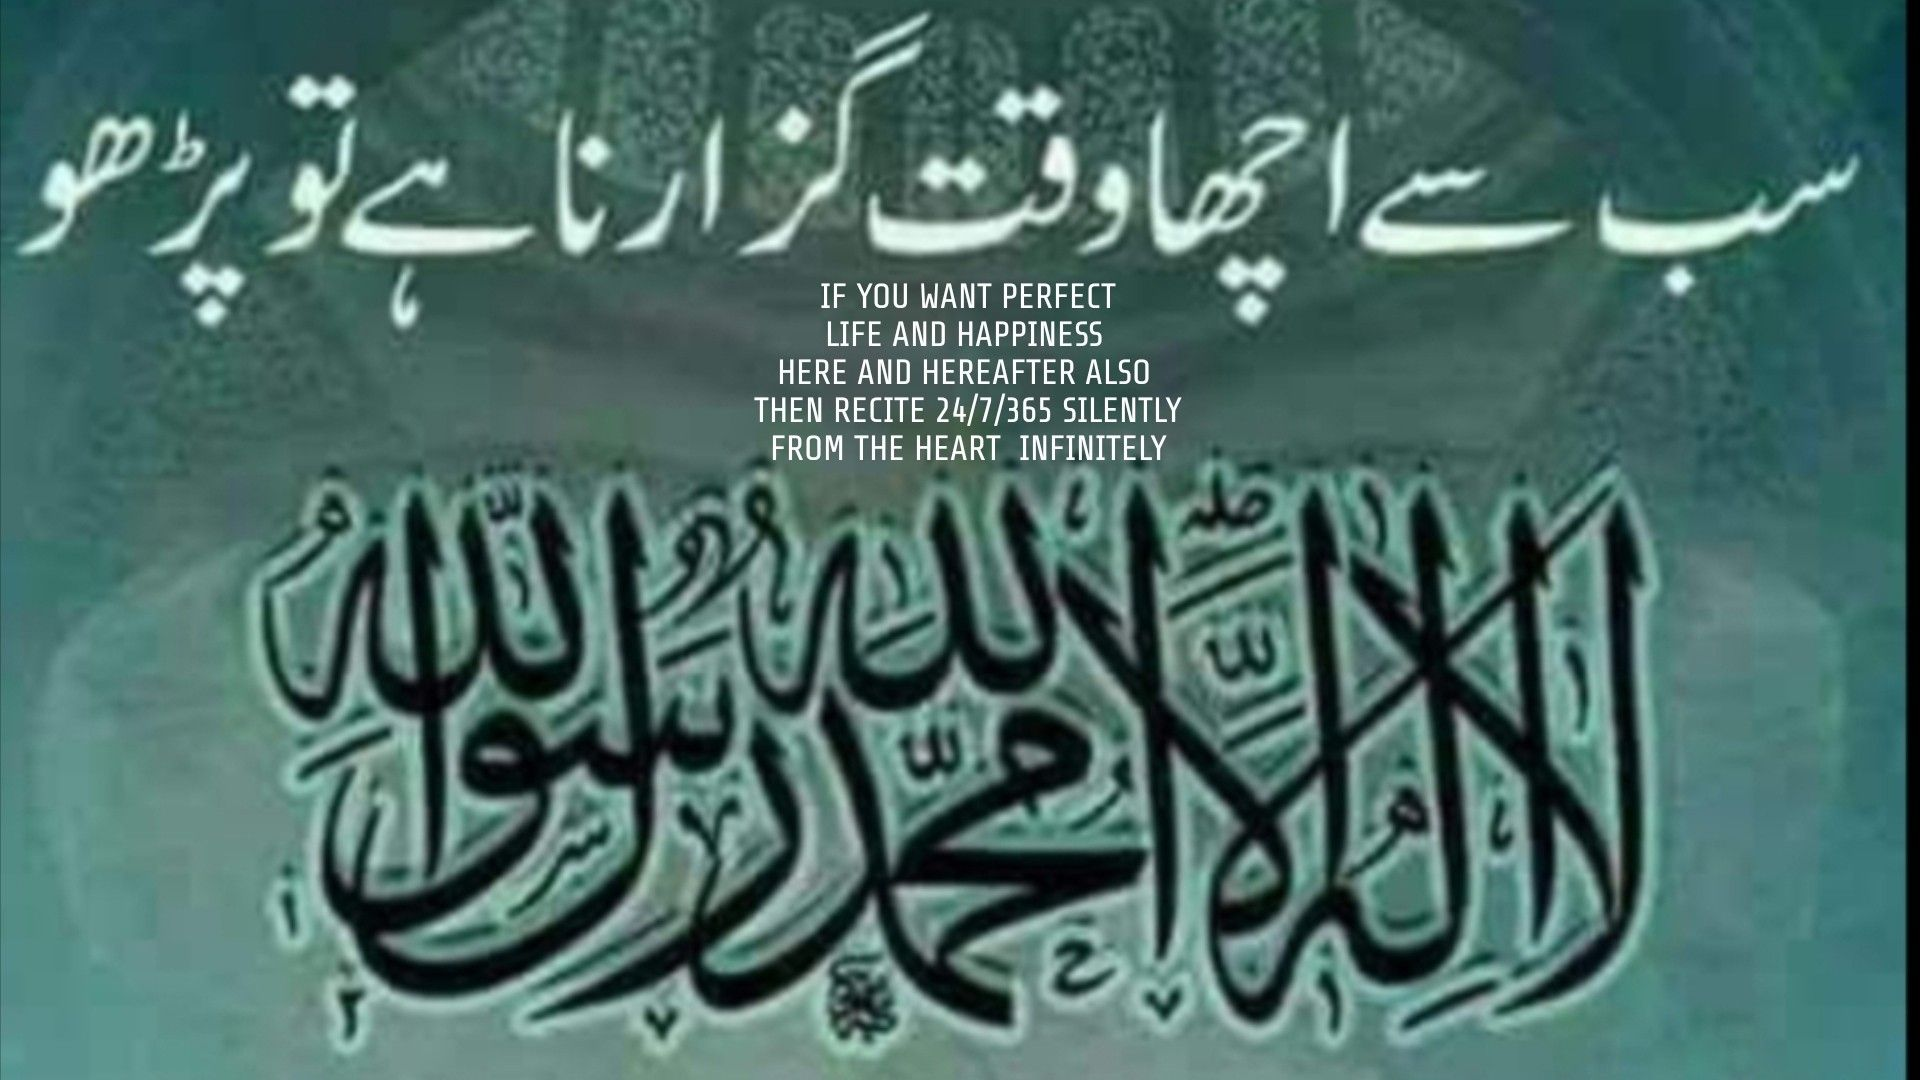 Pin by GHAYUR on 99 Glorious Names of Allah (SWT) Quotes